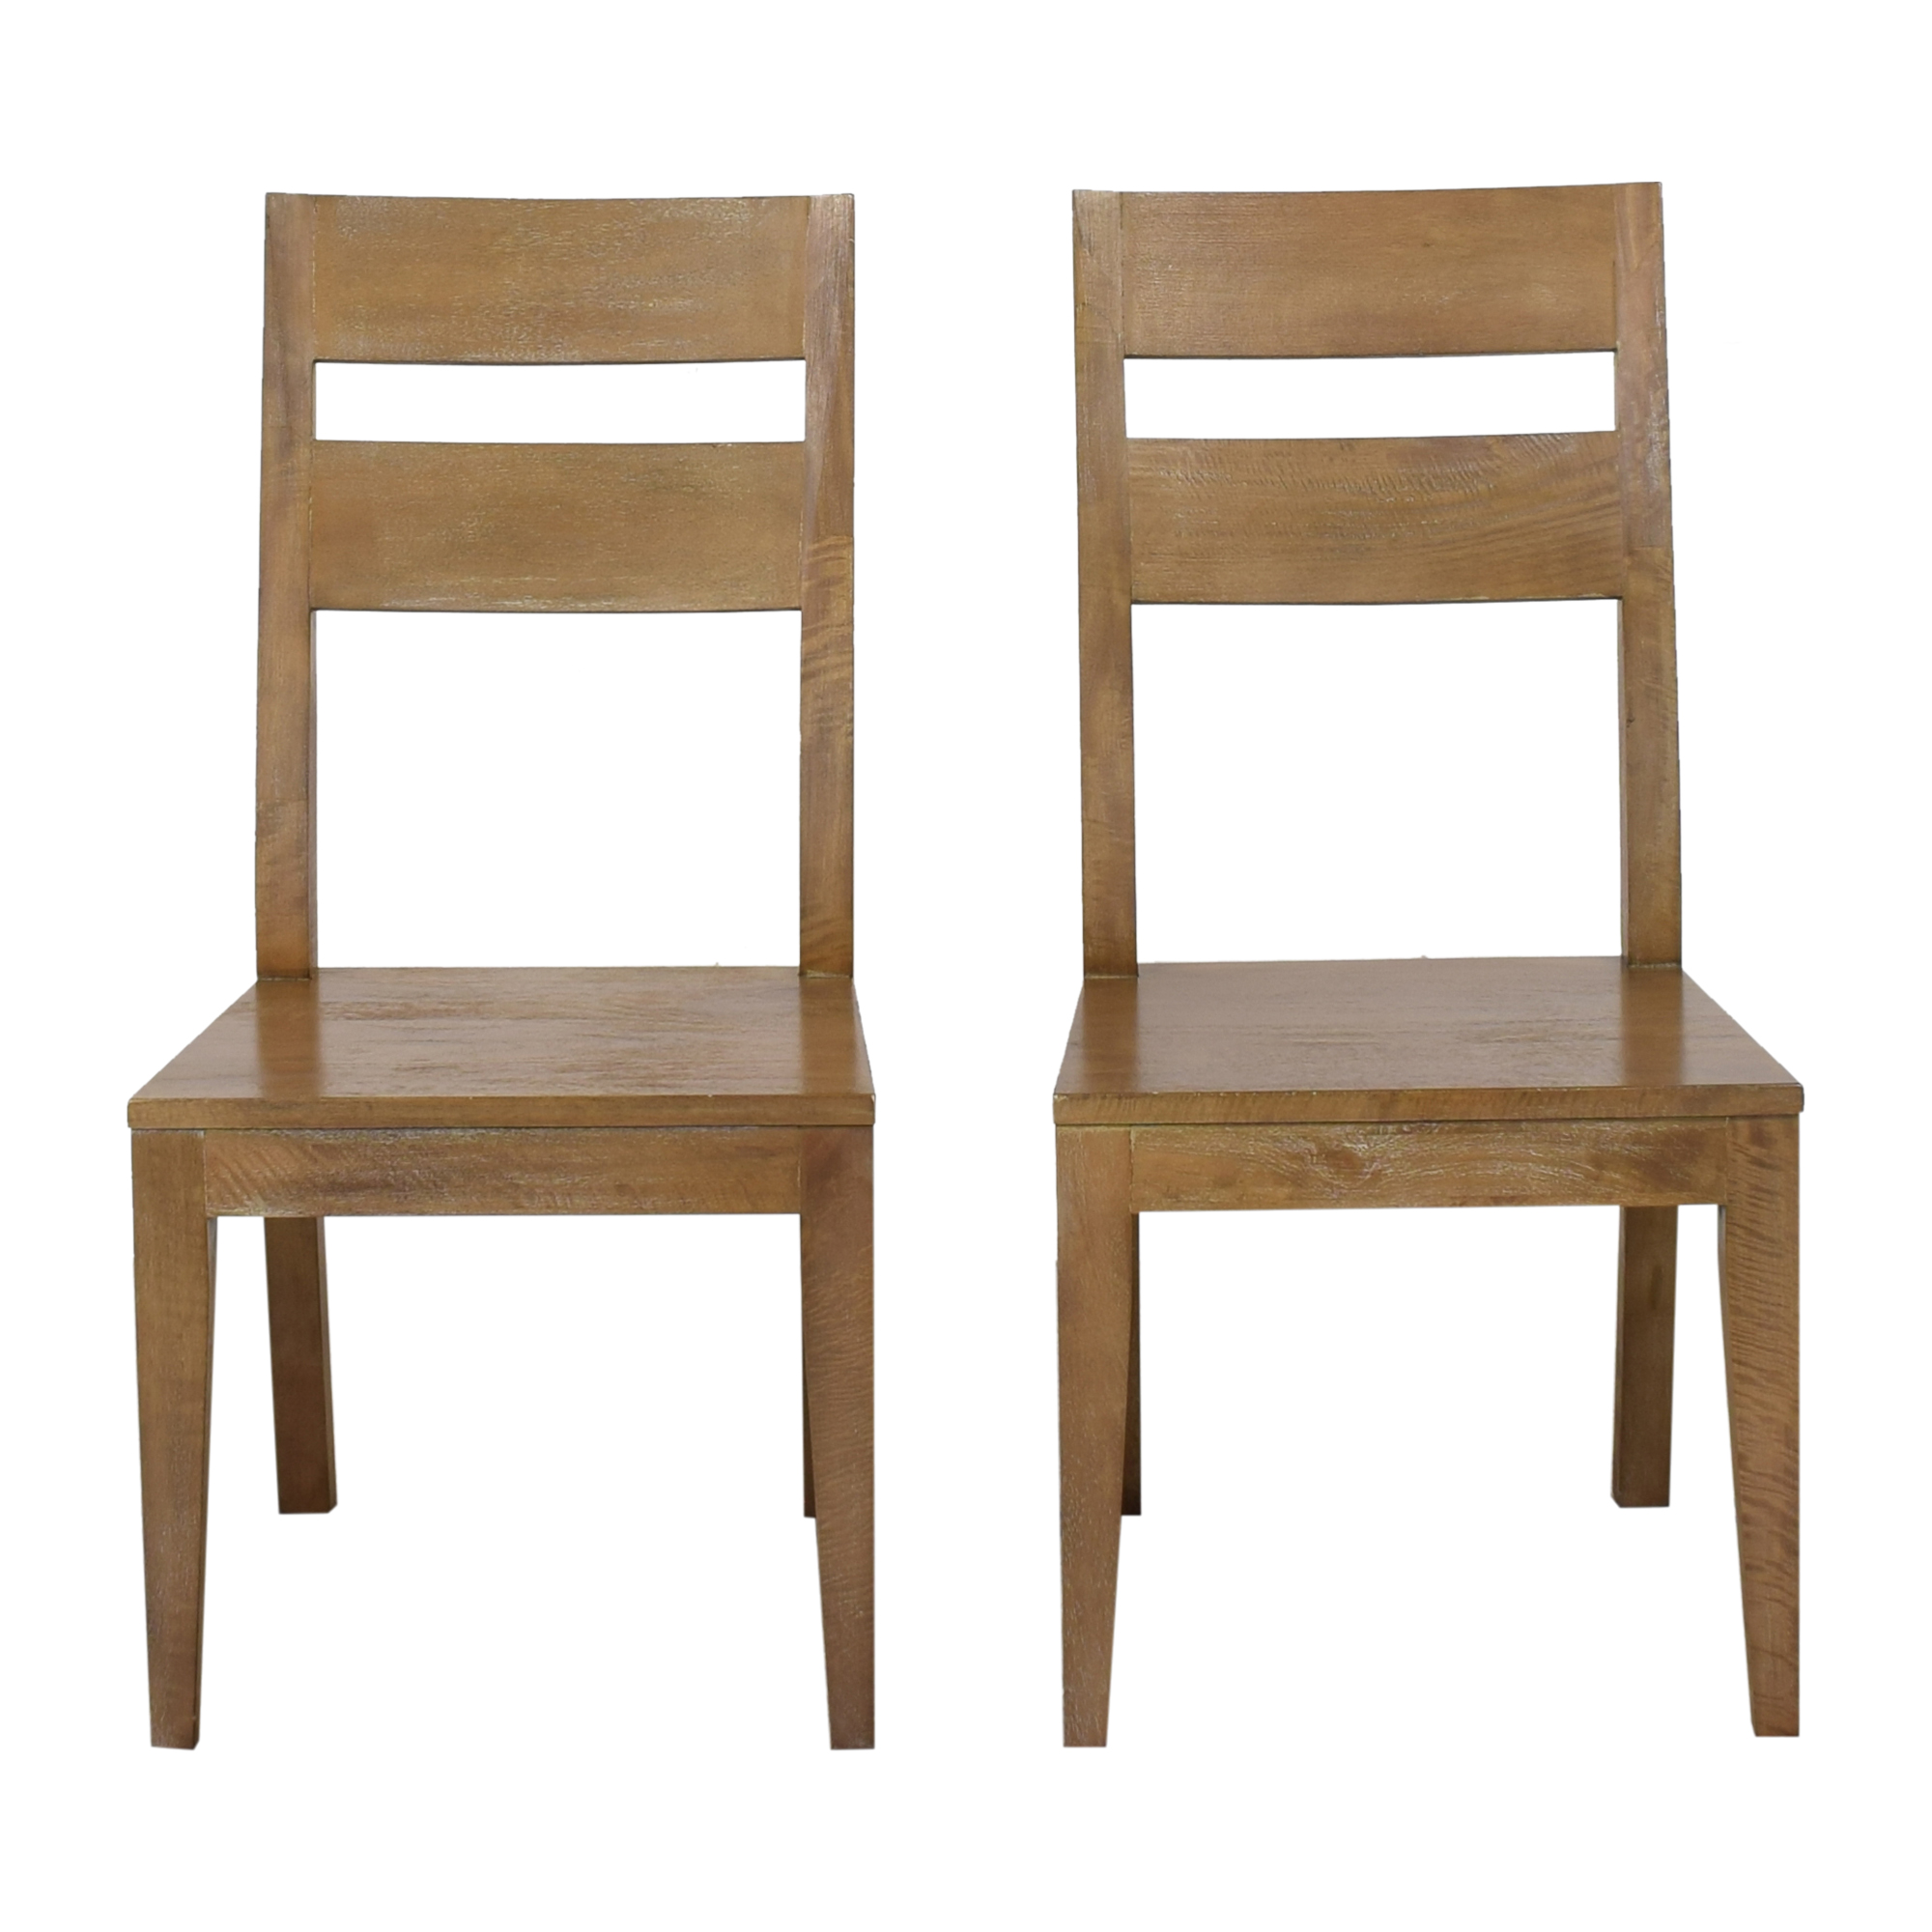 buy Crate & Barrel Crate & Barrel Basque Dining Chairs online